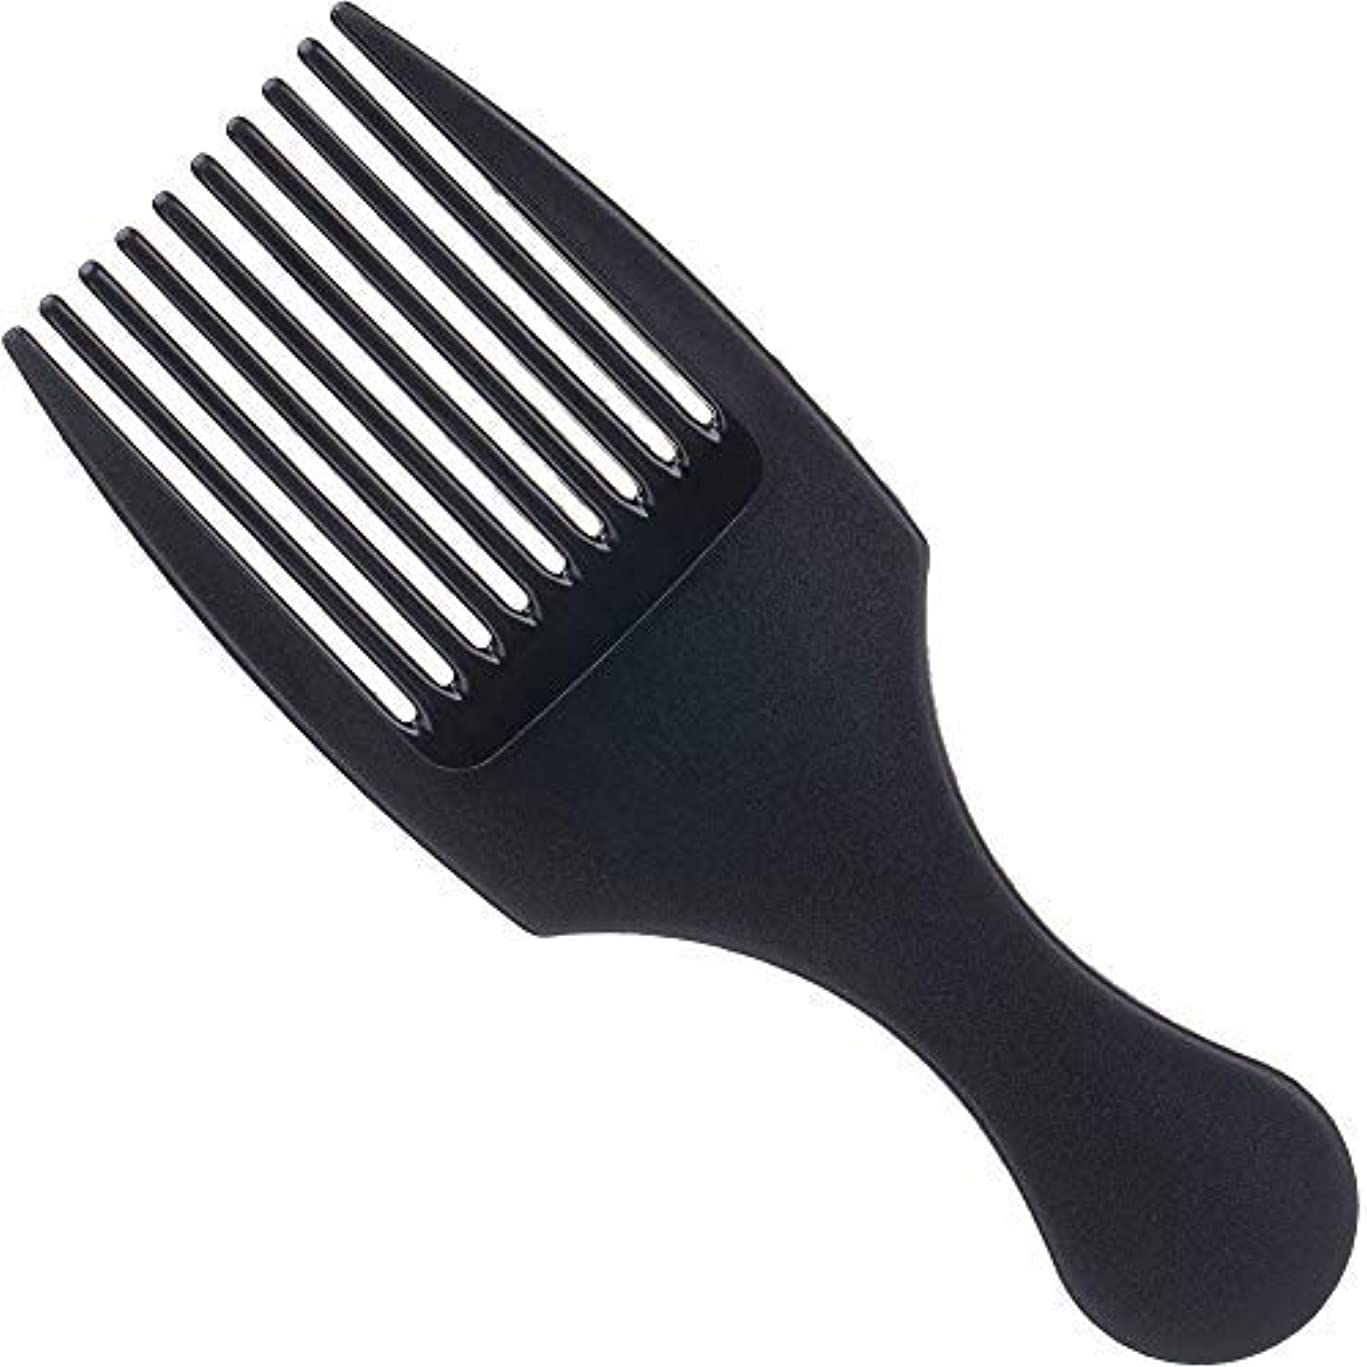 補う路面電車タイマーHair Pick for Natural Hair Styles Afro Comb Picks Hair Brush Hair Styling Tool Pik for Volume & Tangles [並行輸入品]